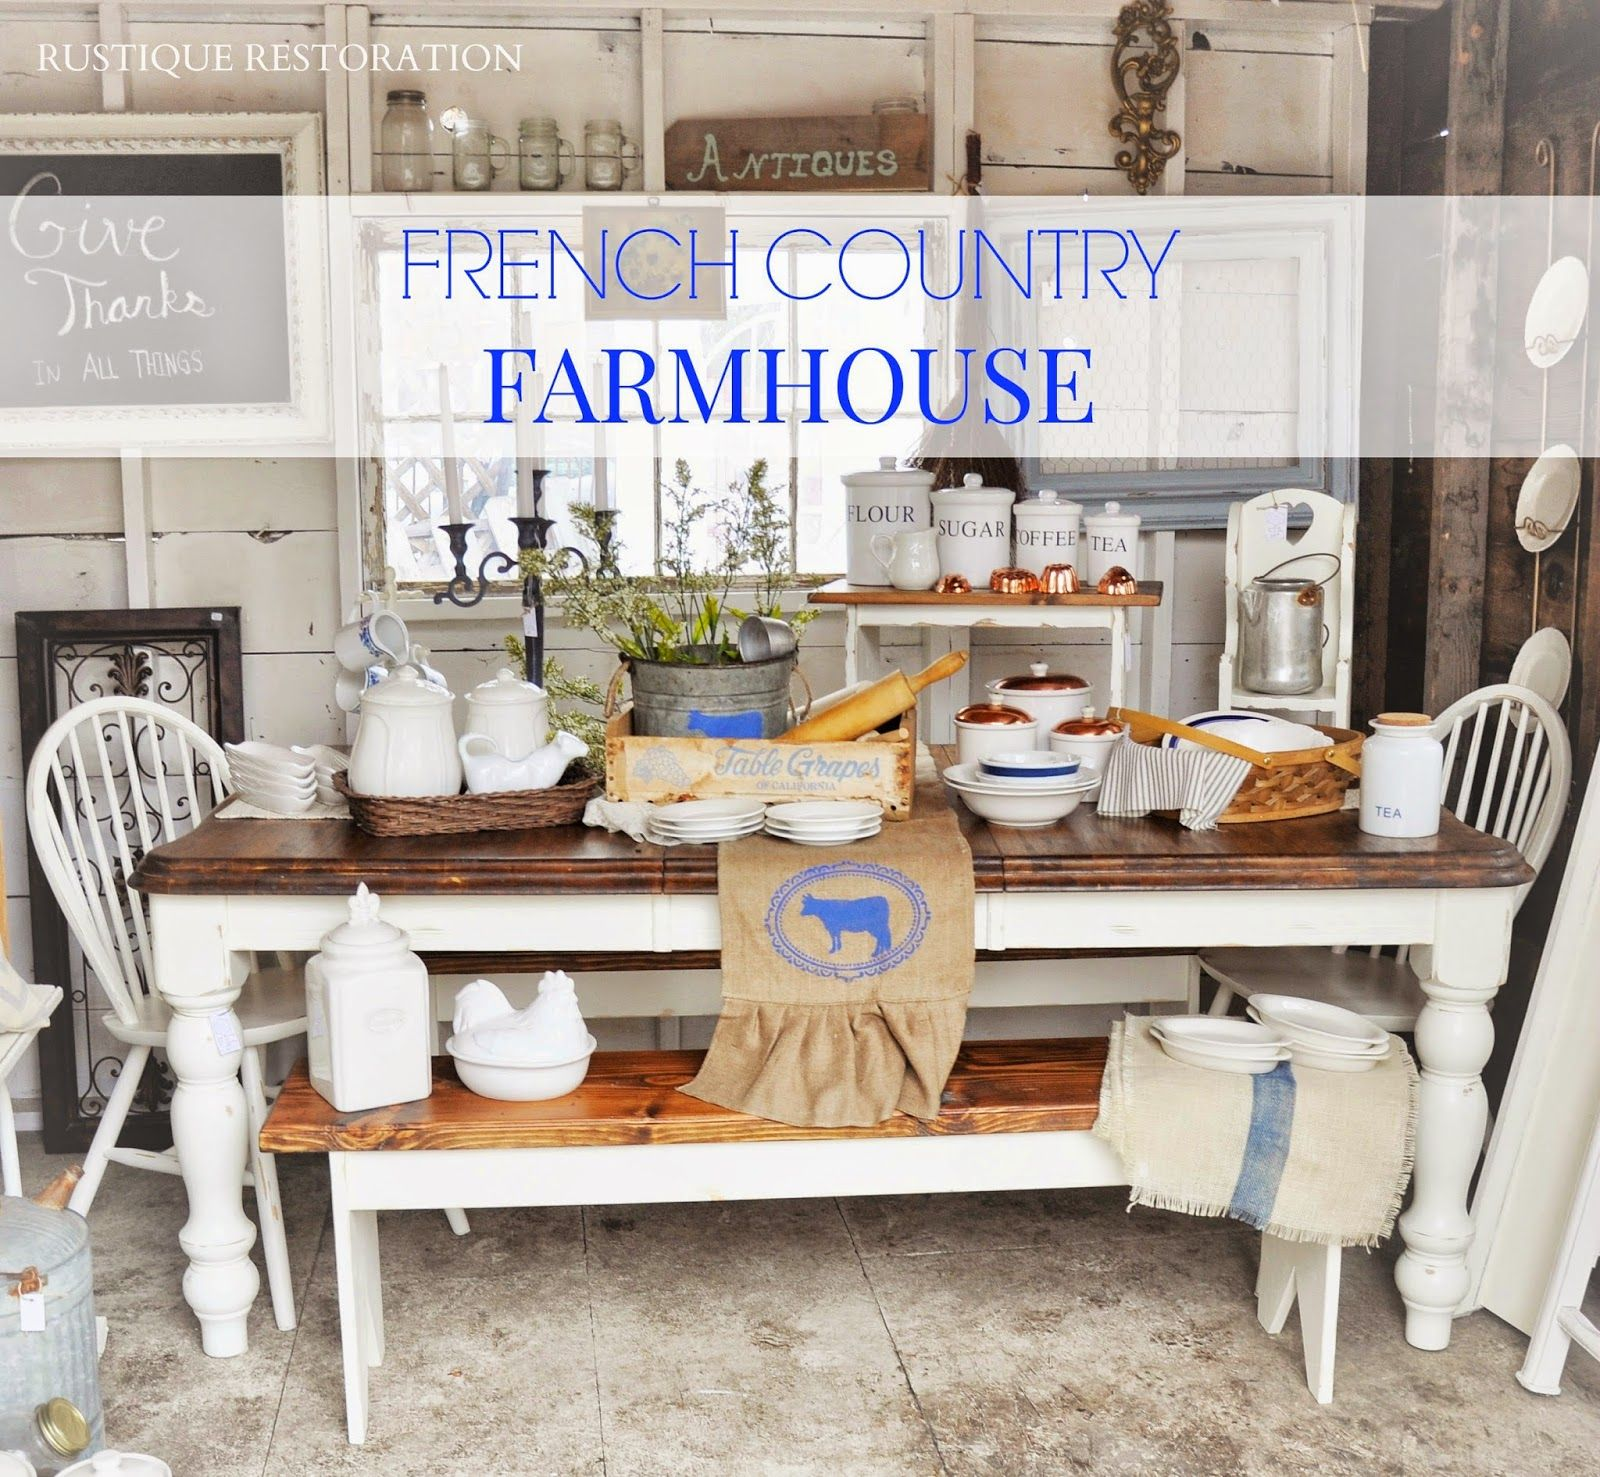 French Vintage Kitchen Design: Rustique Restoration: French Country Farmhouse Table And